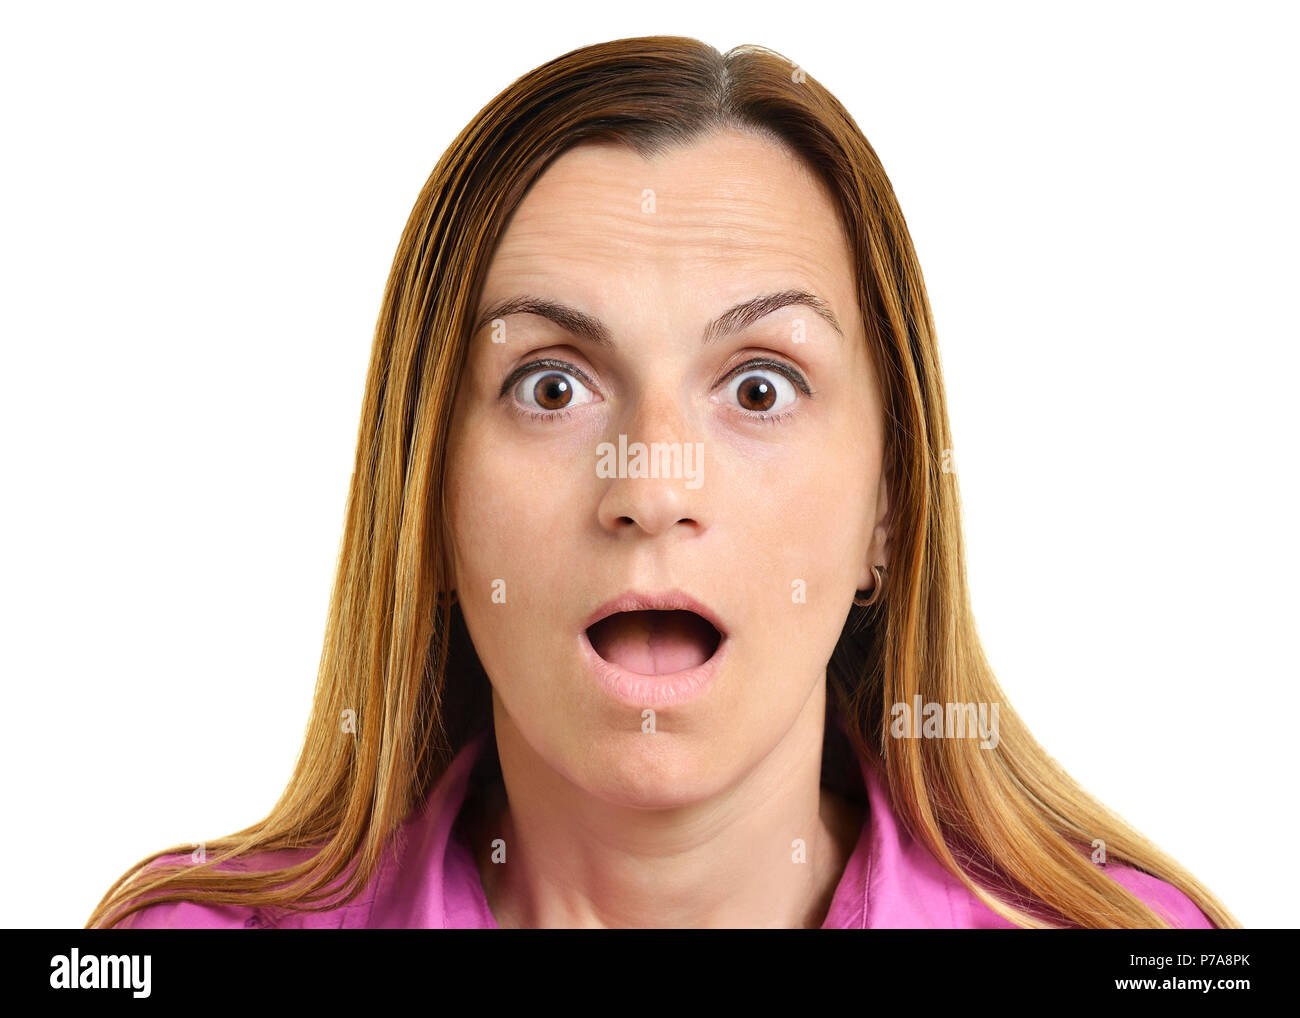 Shocked Expression on a Womans Face, Cut Out - Stock Image